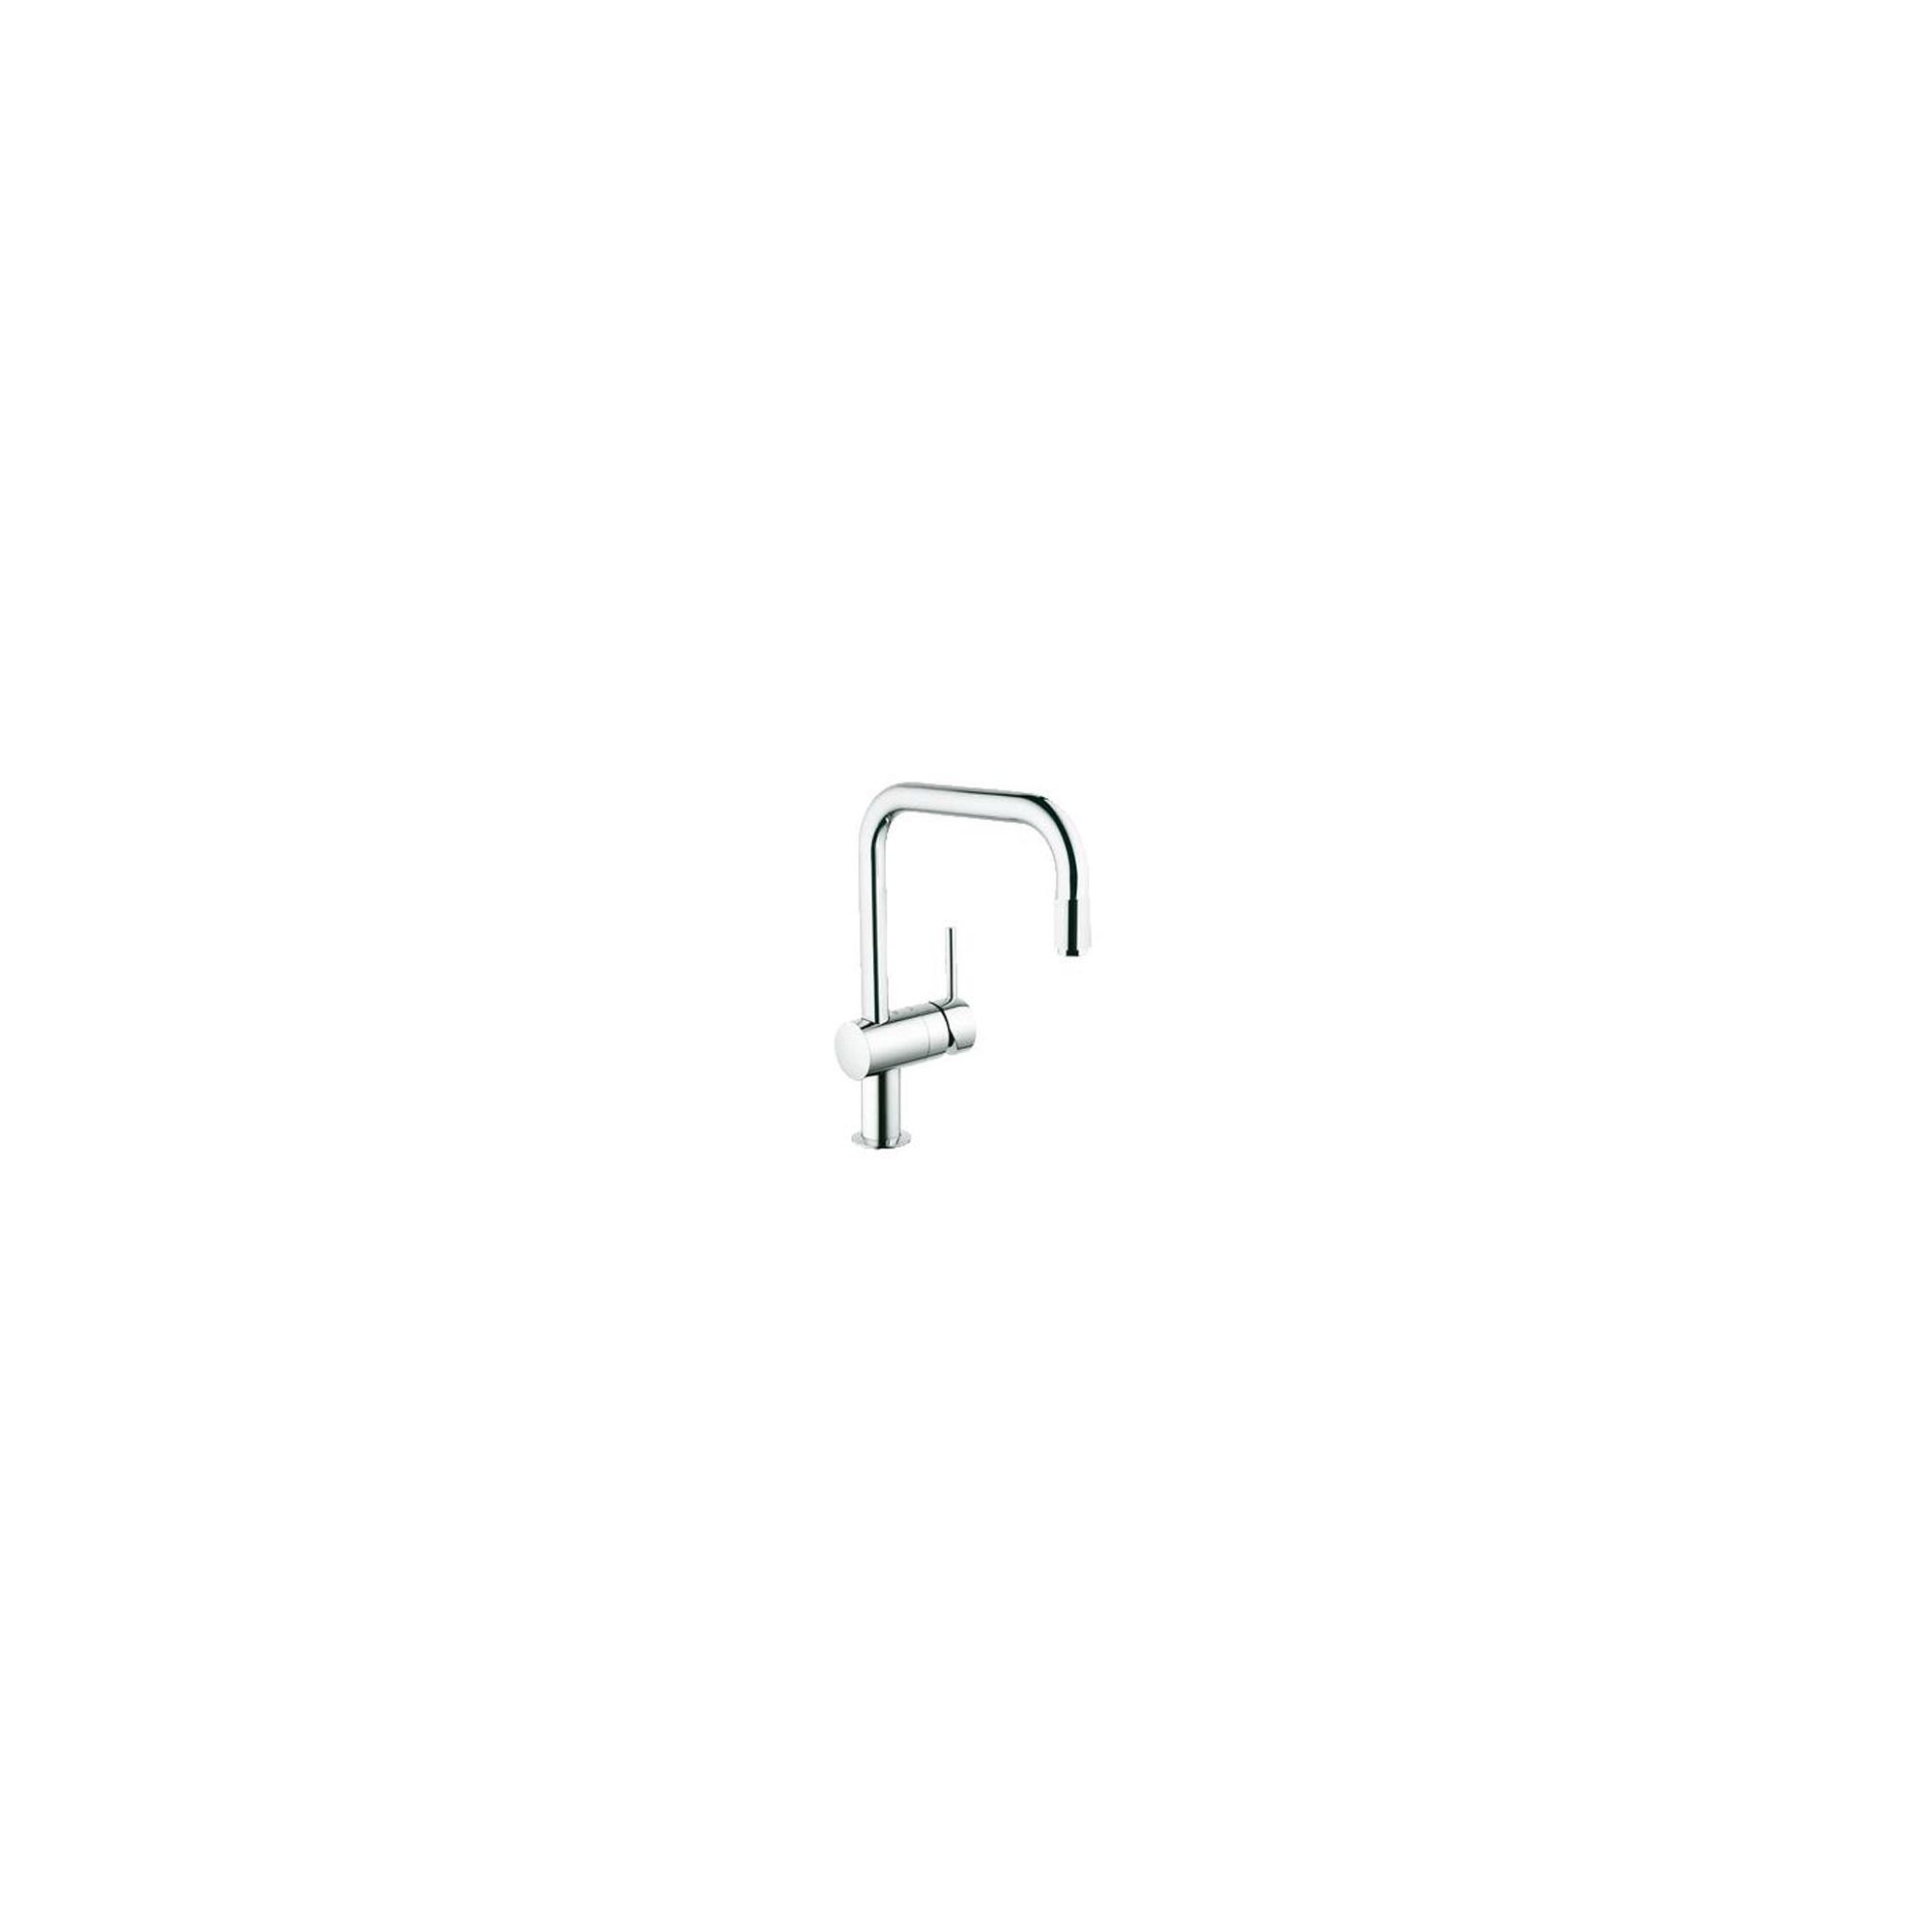 Grohe Minta Mono Sink Mixer Tap, Pull-Out U-Spout, Single Handle, Chrome at Tesco Direct